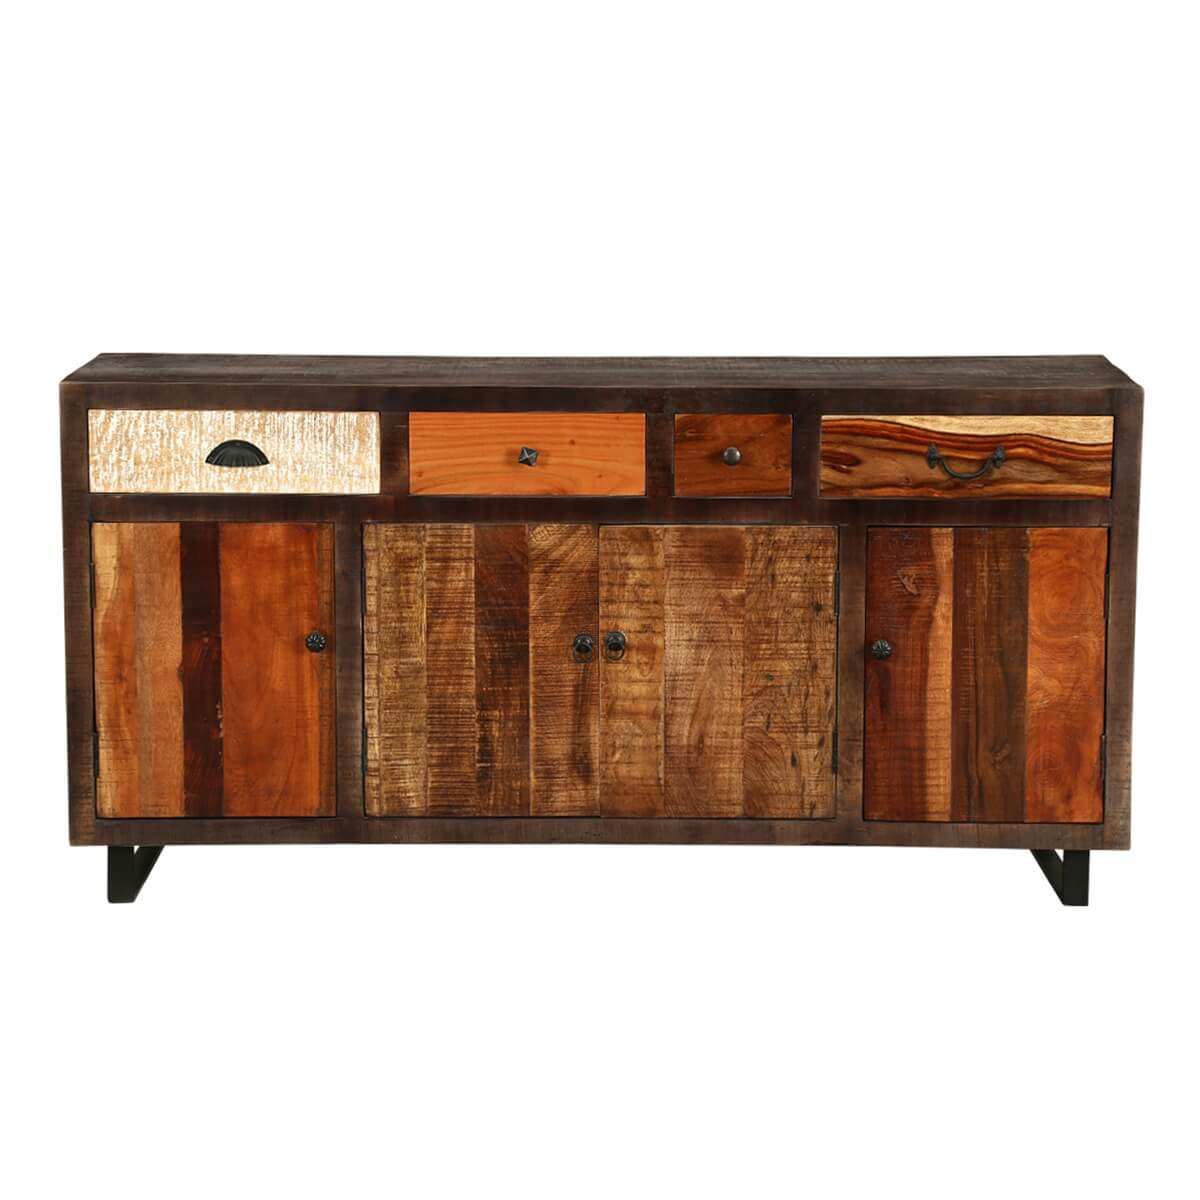 oakland mango wood industrial style sideboard. Black Bedroom Furniture Sets. Home Design Ideas